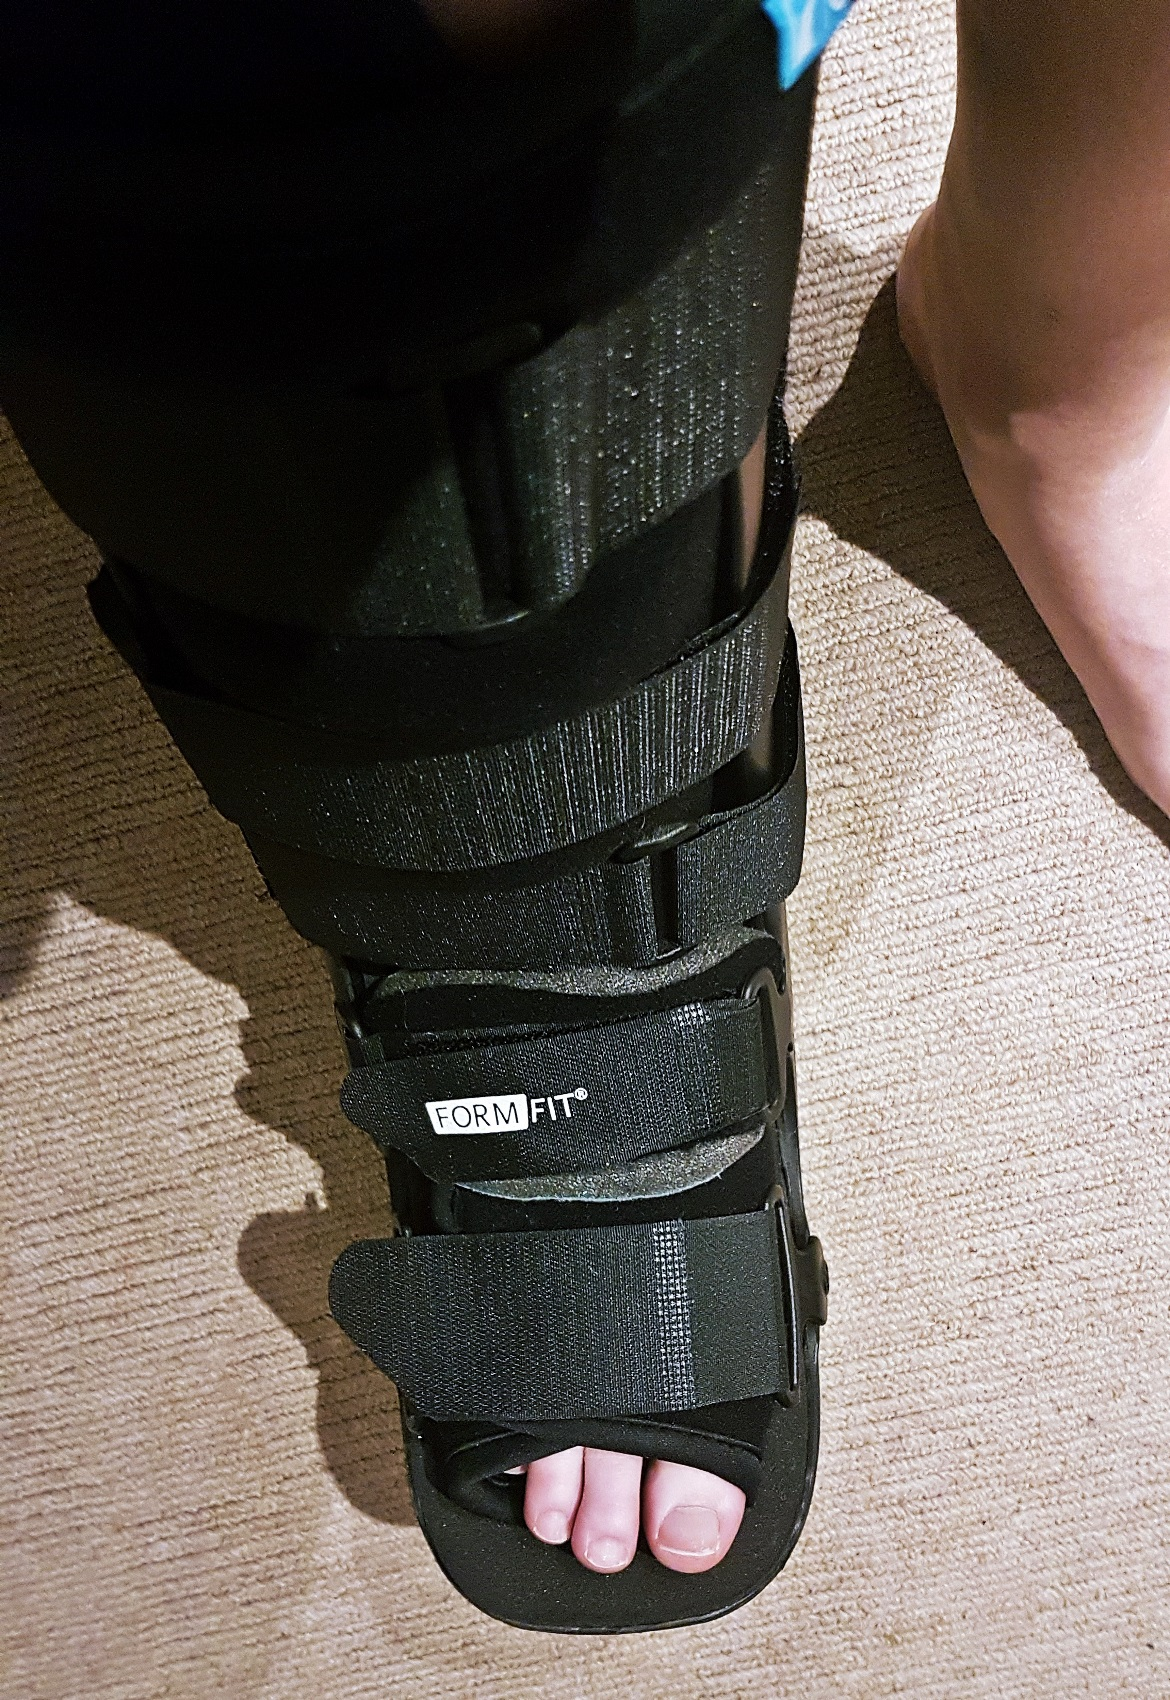 My walking boot - One Broken Foot, Two Chronic Illnesses, and the Importance of Positivity by BeckyBecky Blogs